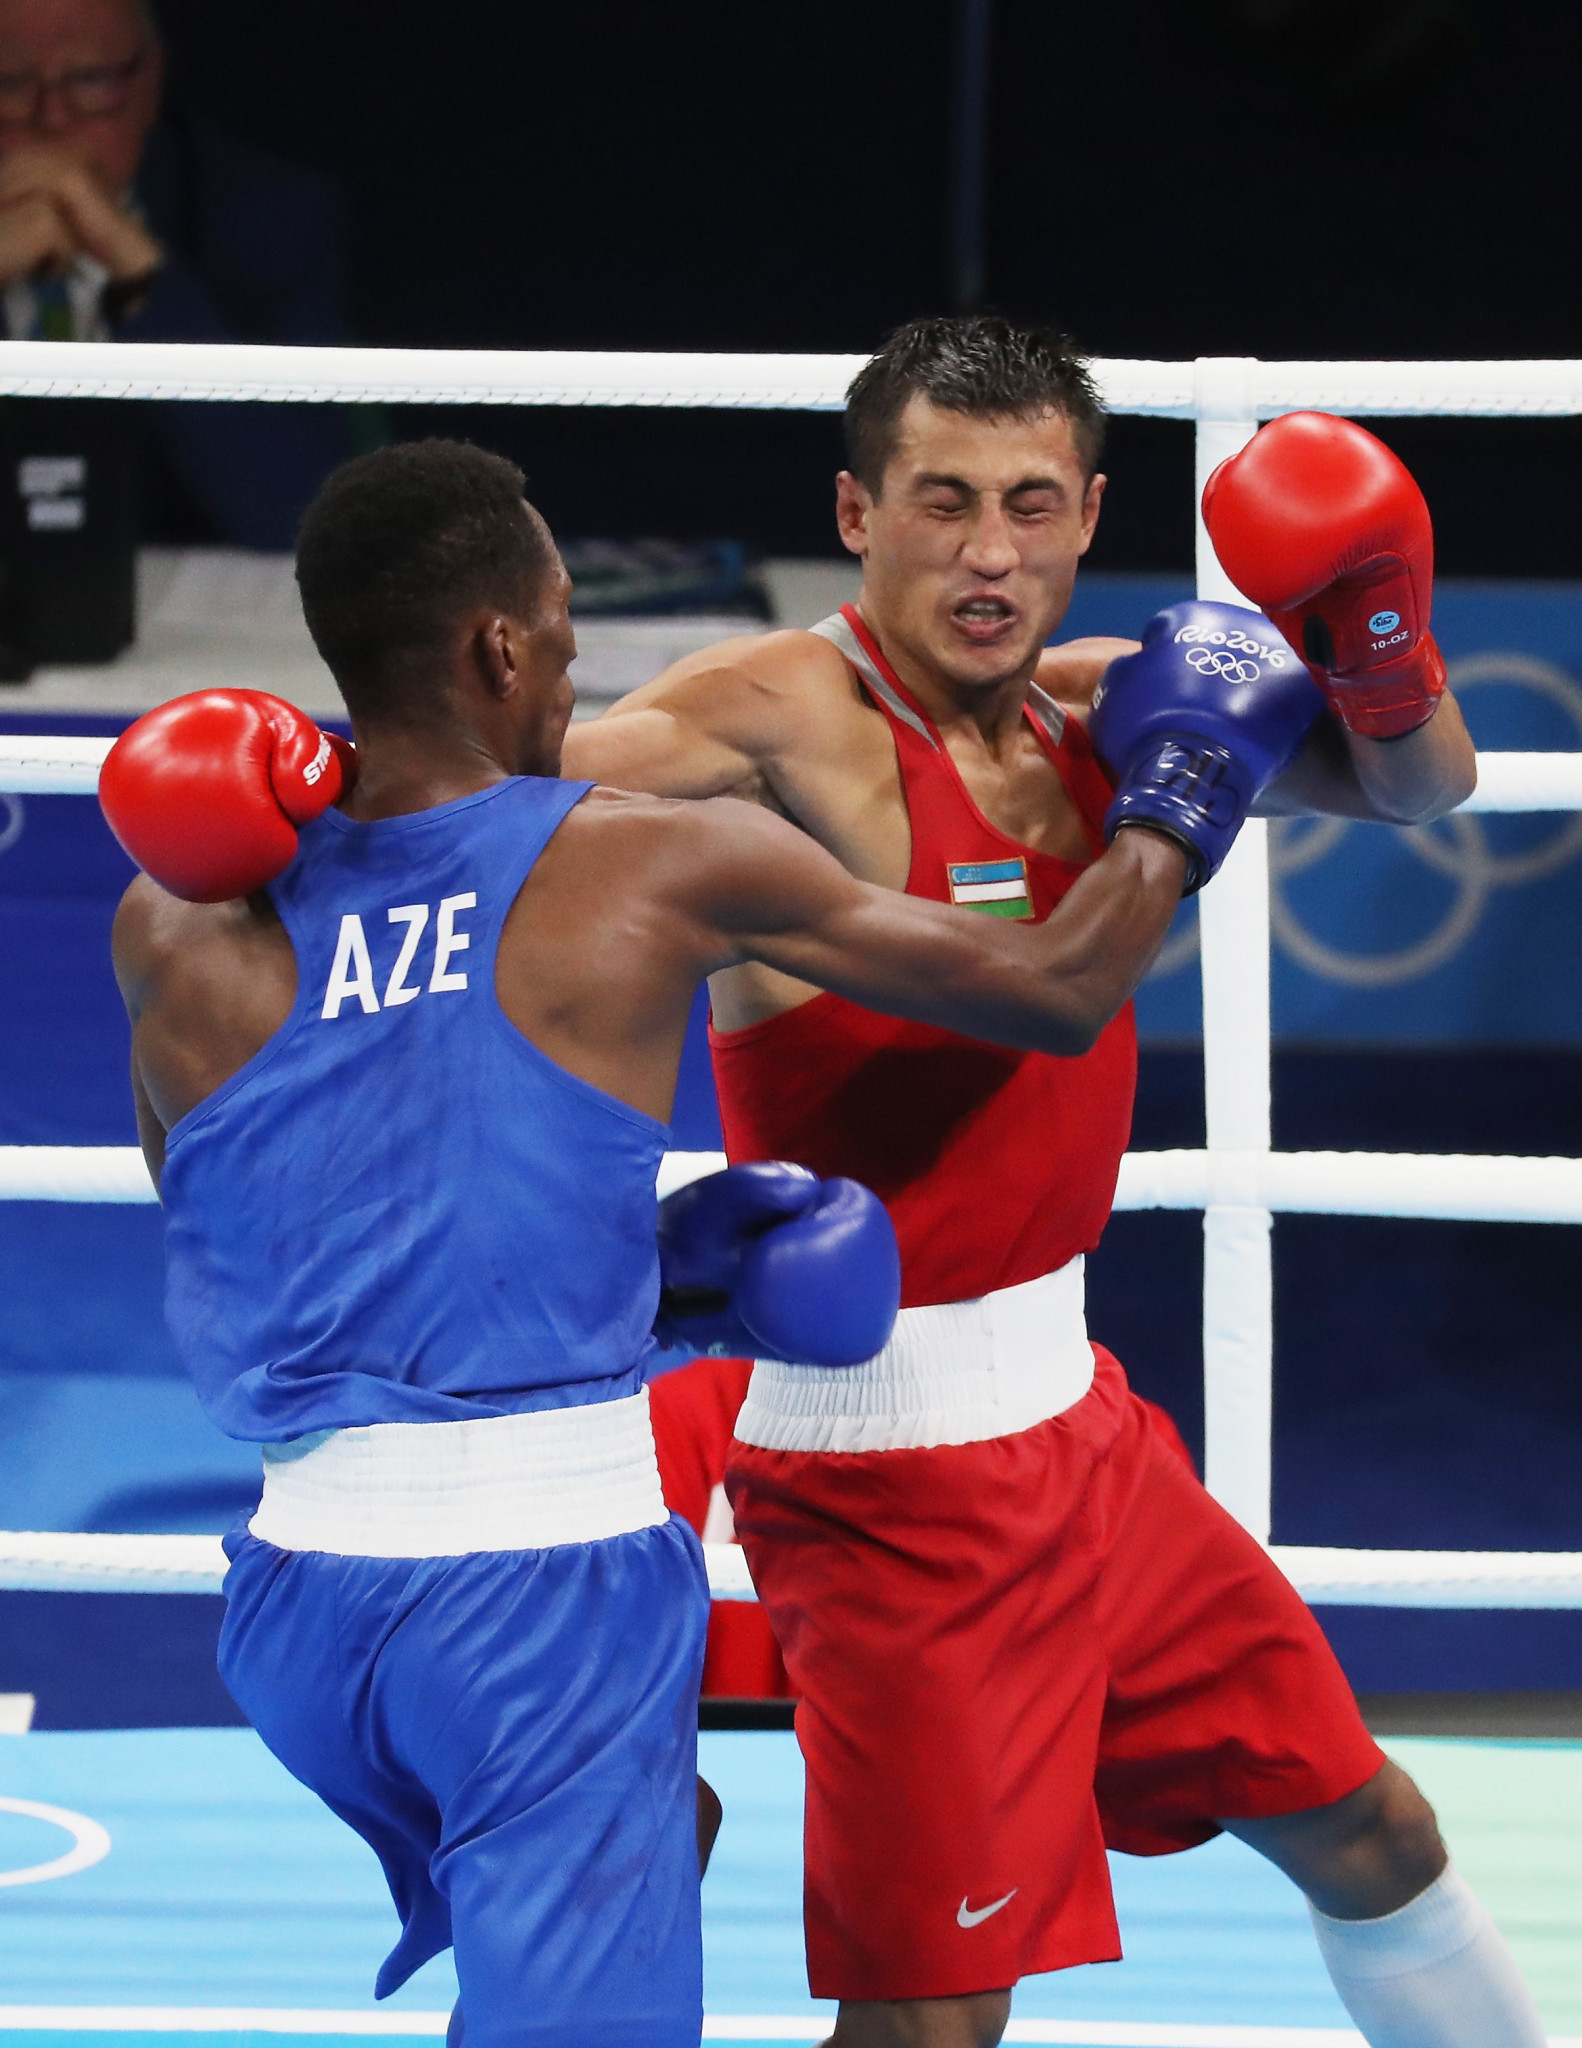 Much uncertainty surrounds the future of boxing at the Olympic Games ©Getty Images